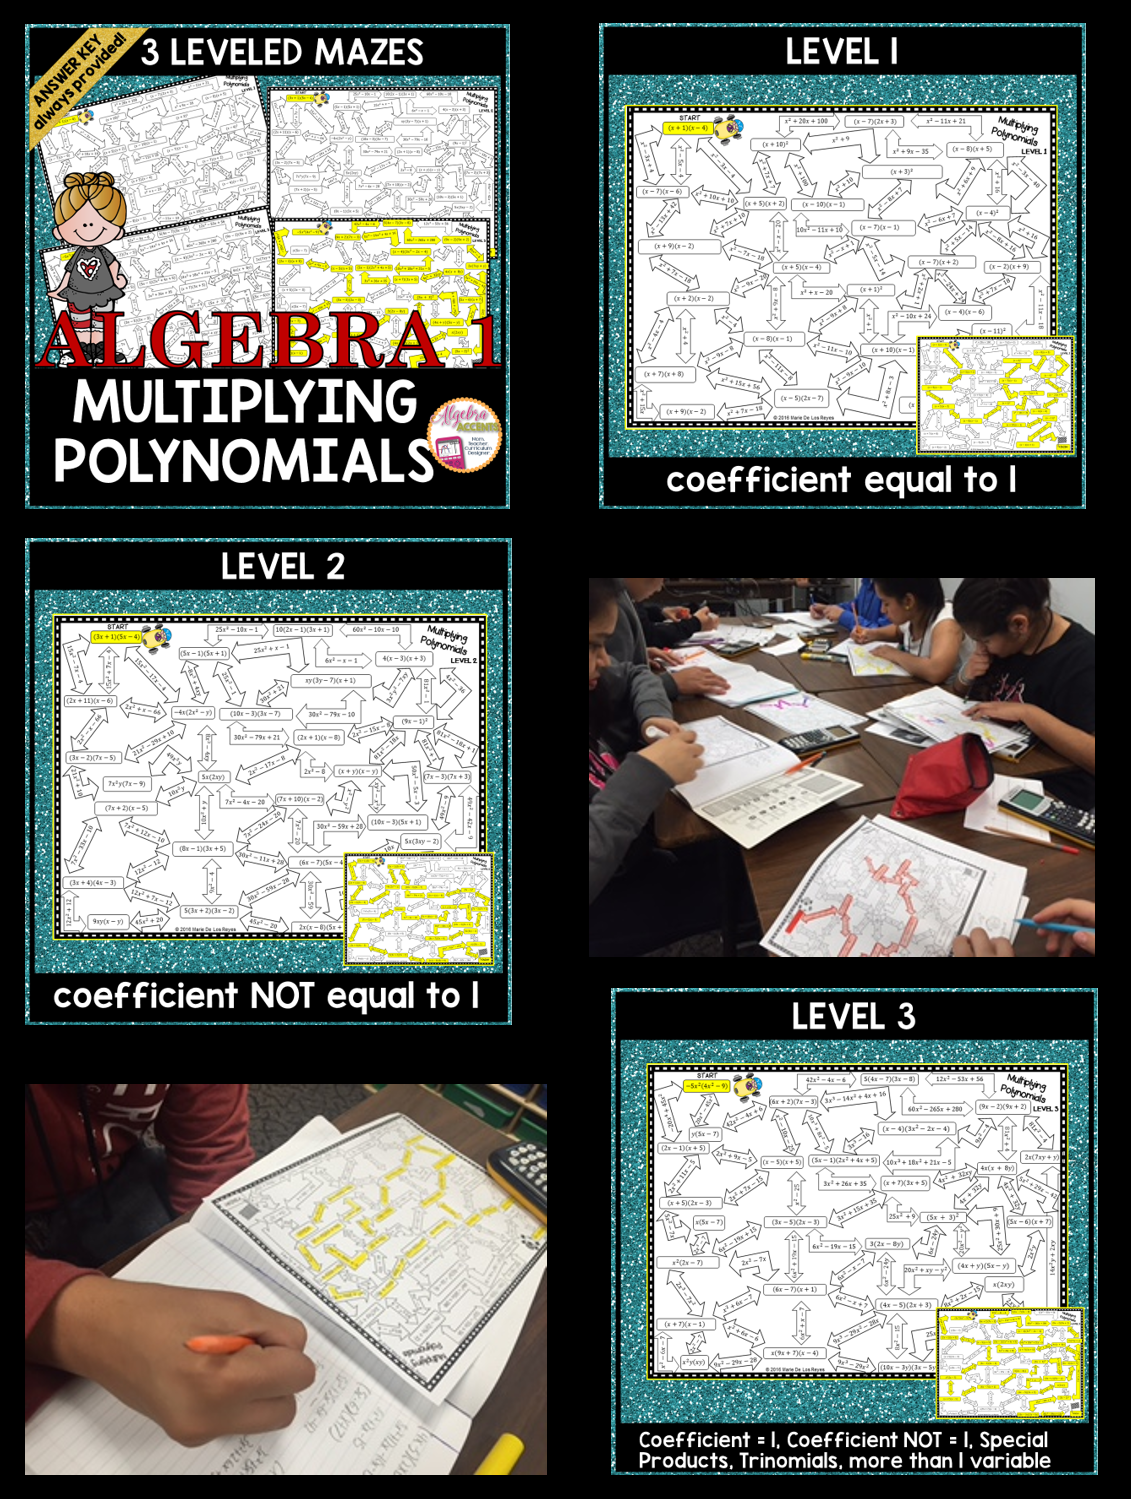 Multiplying Polynomials Maze With Differentiated Levels Students